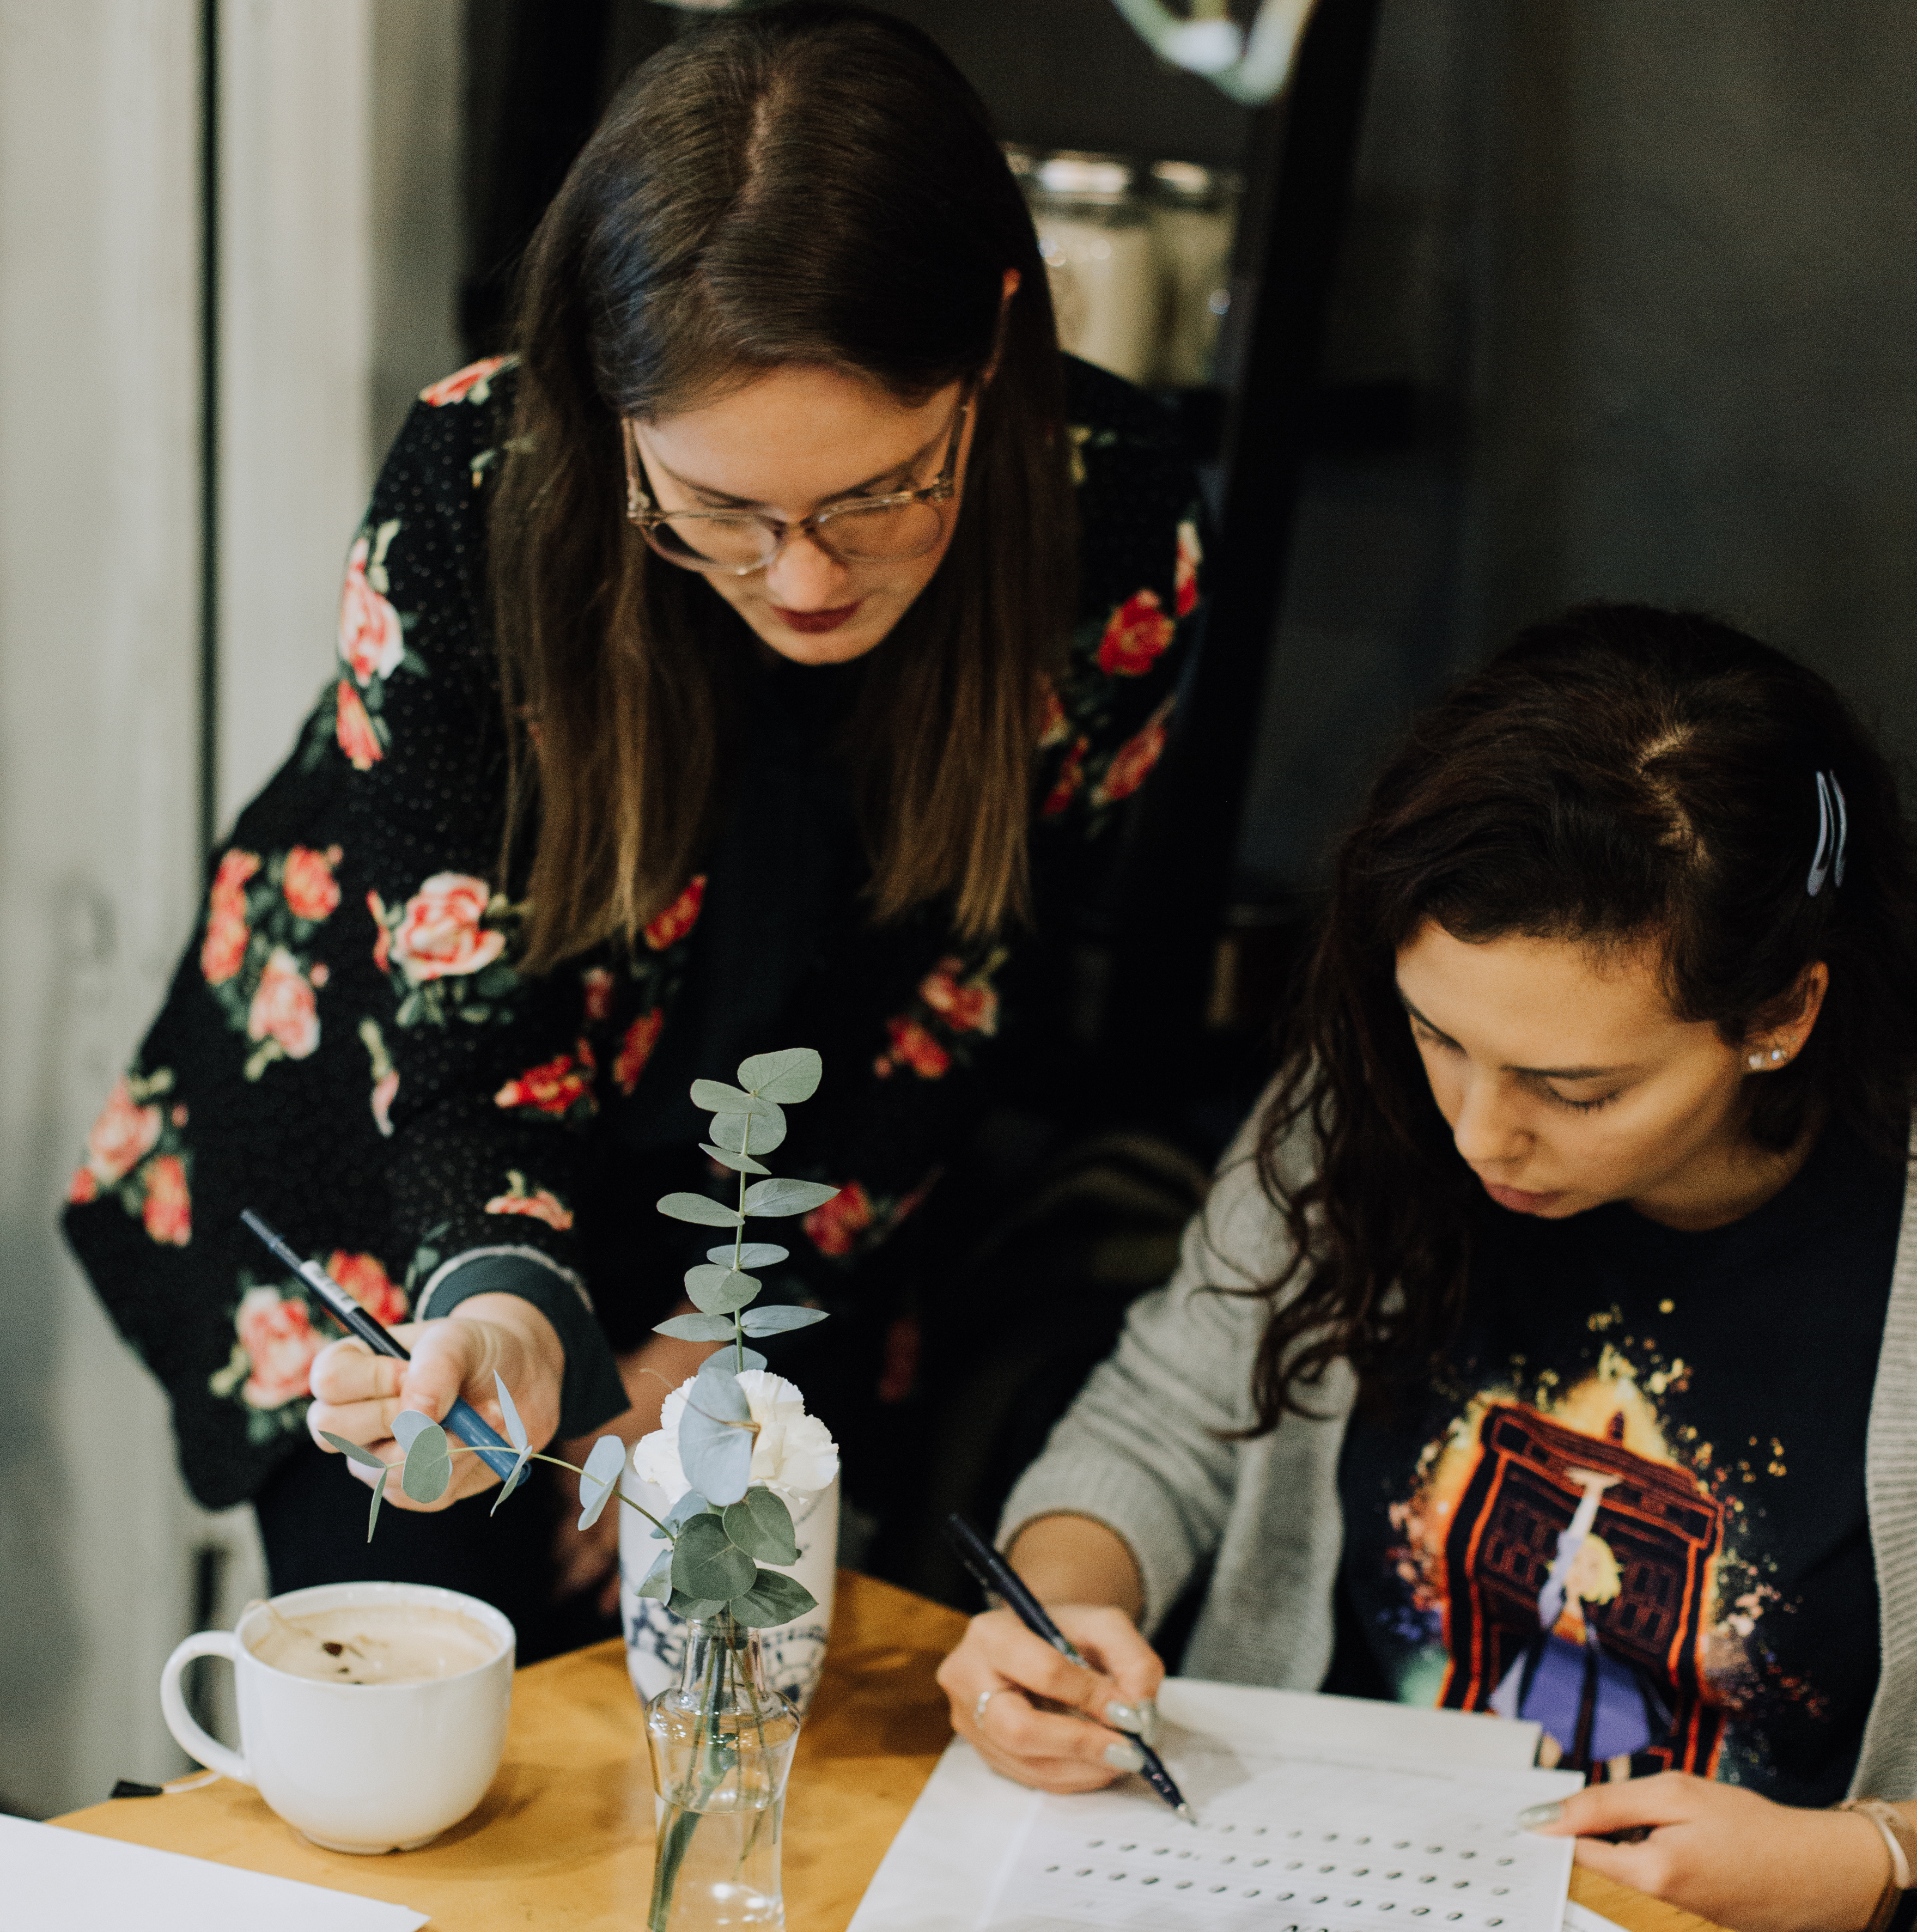 Calligraphy Instructor and student in workshop